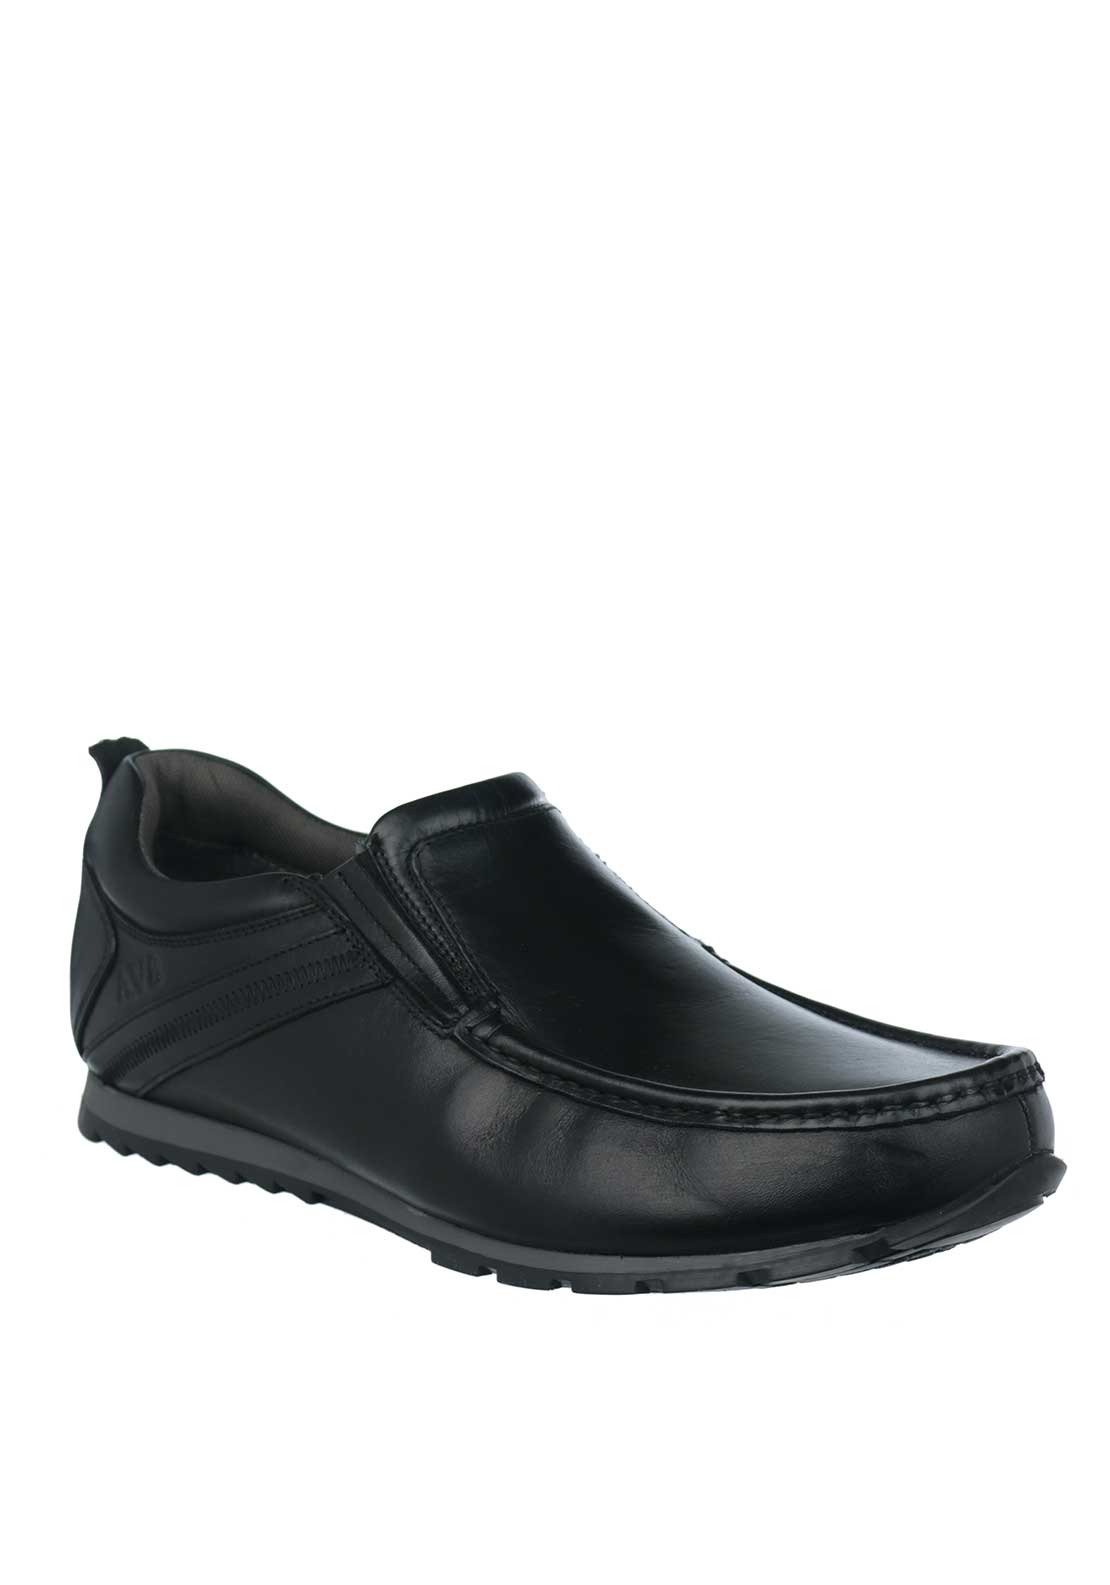 Dubarry Kobe Leather Loafer Shoes, Black